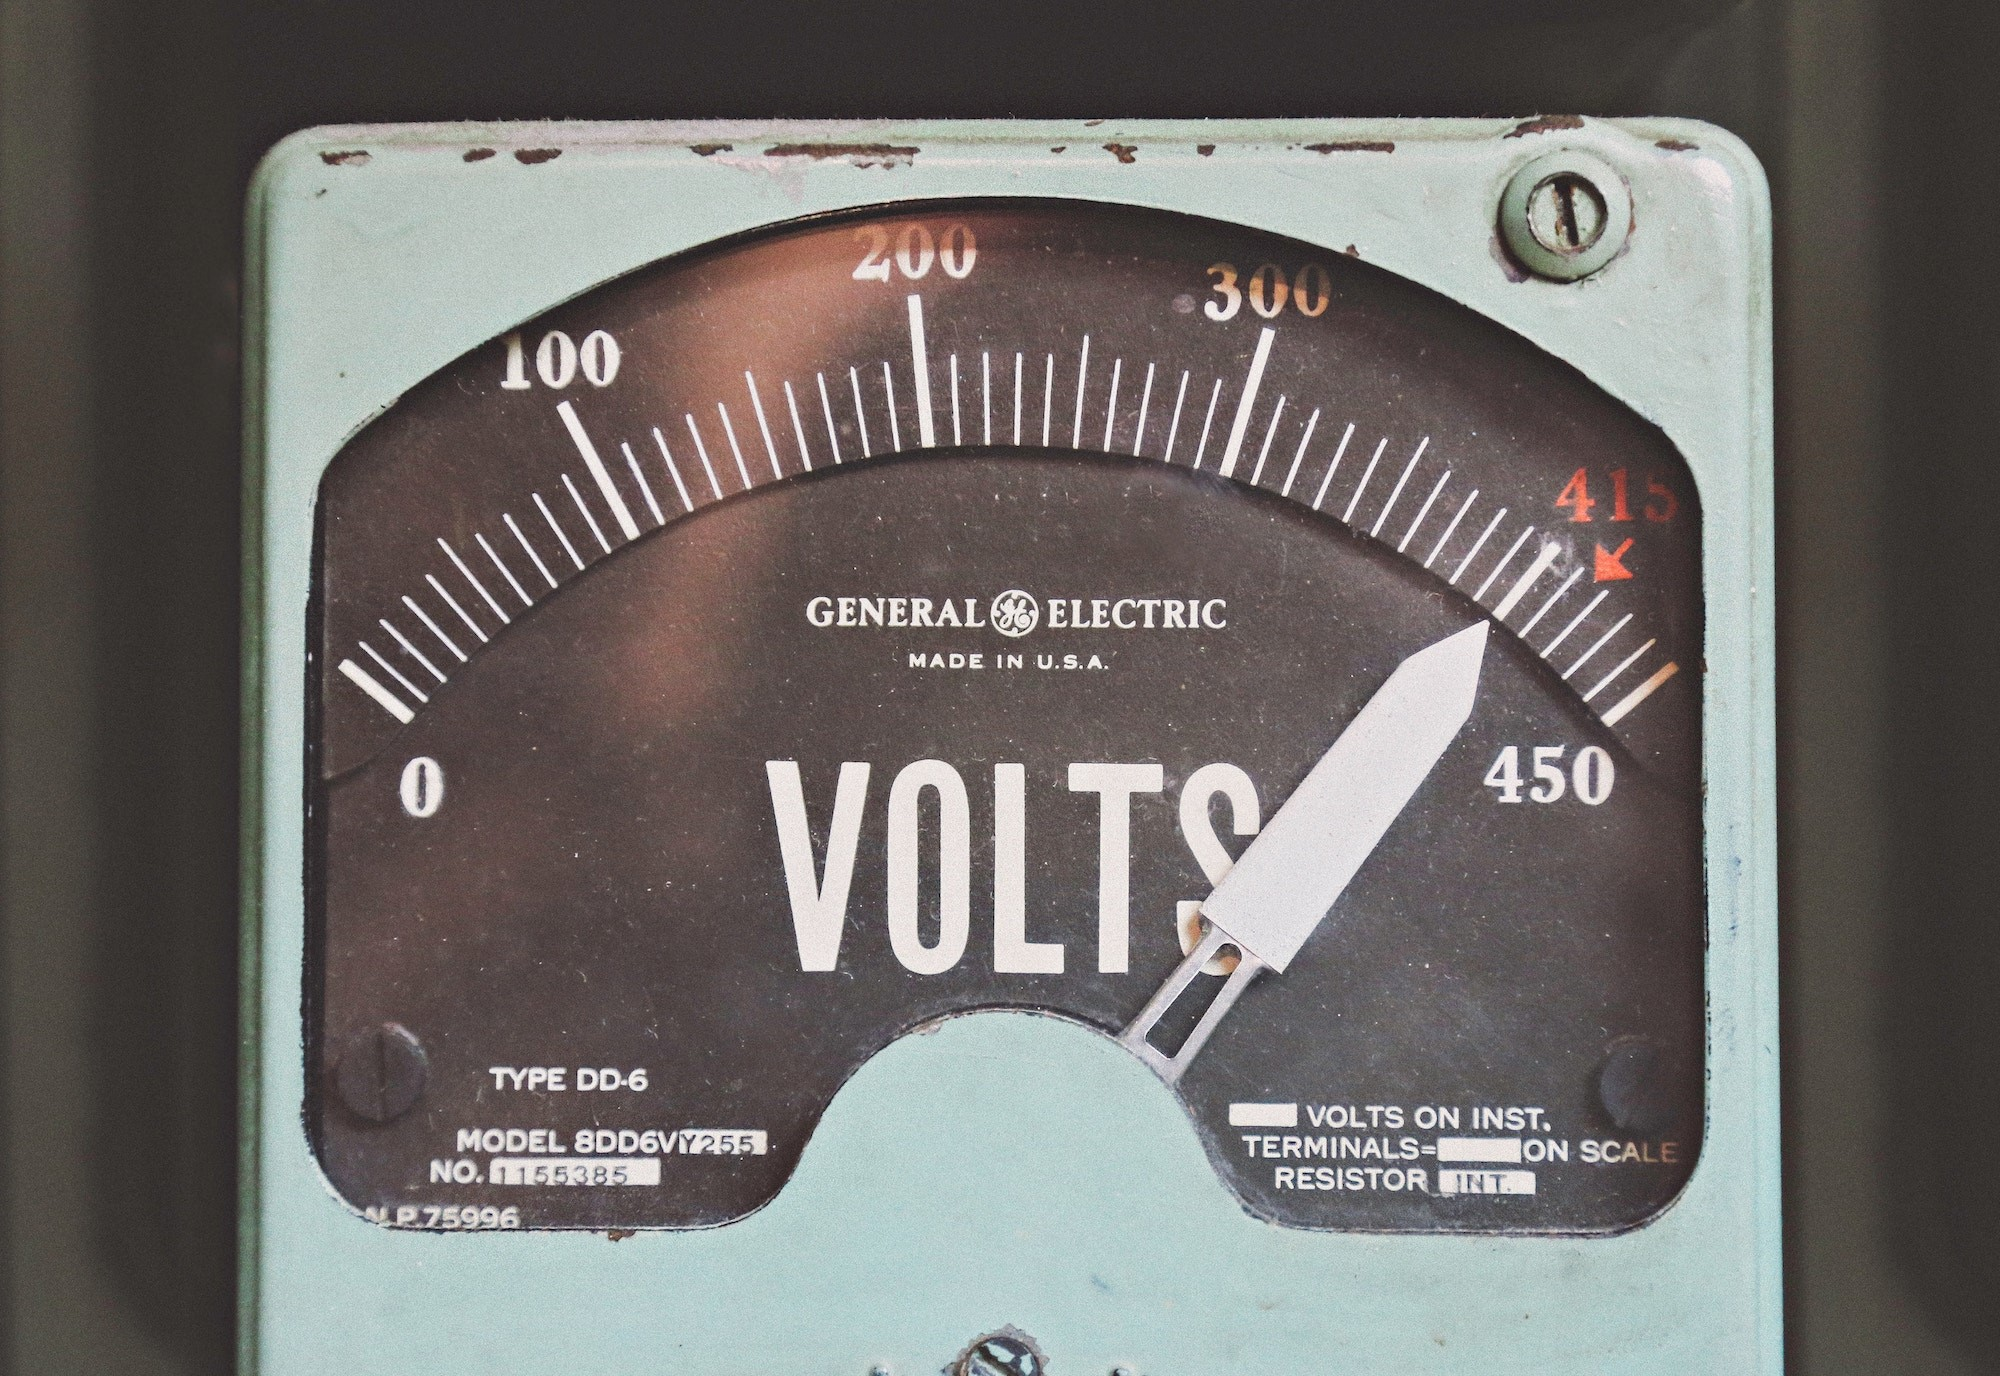 Picture of a voltmeter measuring energy